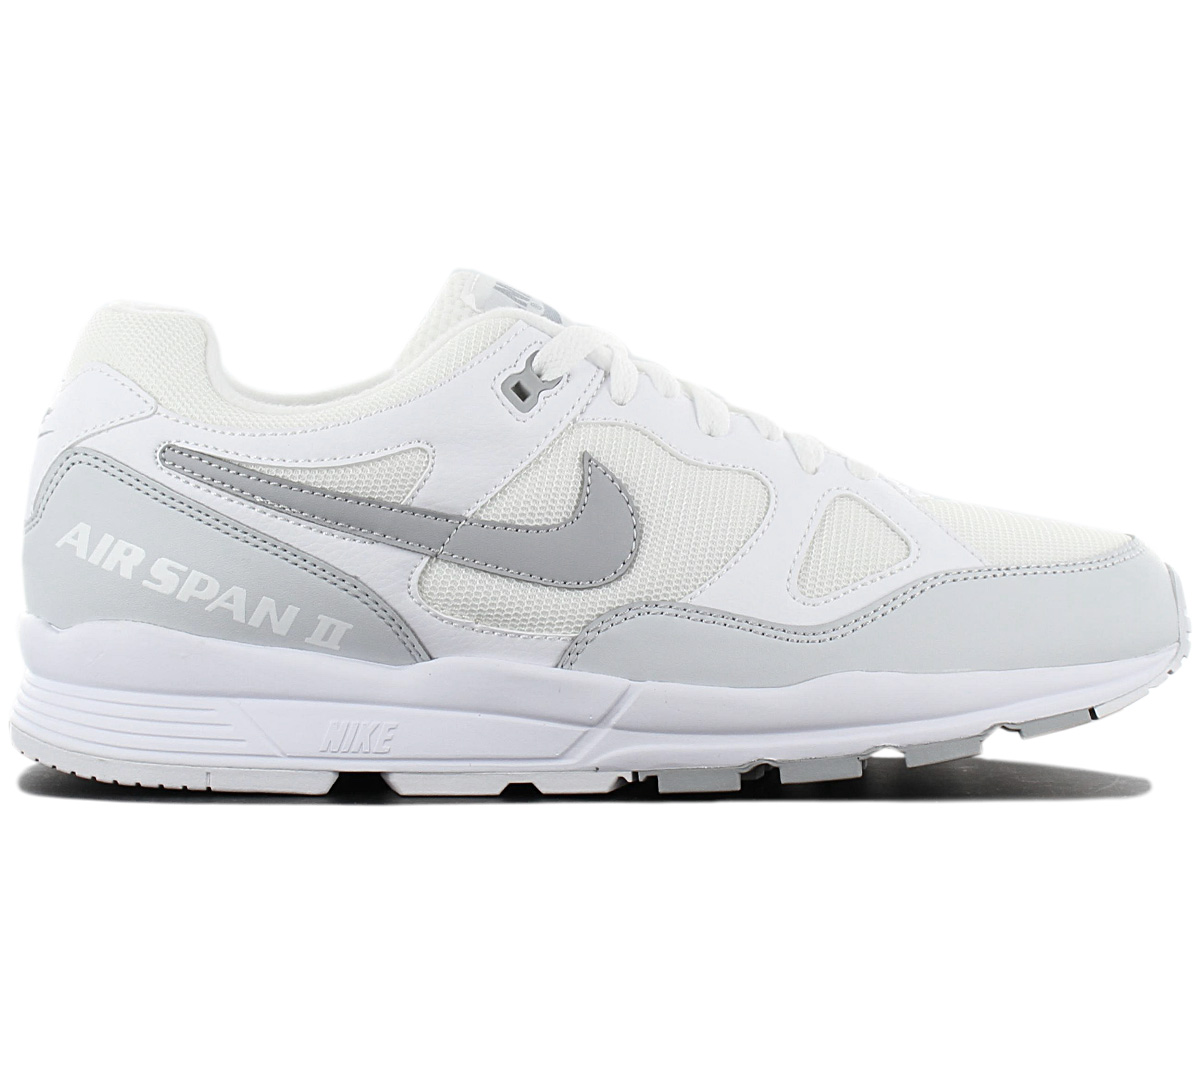 Details about Nike Air Span 2 Men's Sneaker AH8047-105 White Shoes Casual  Trainers New